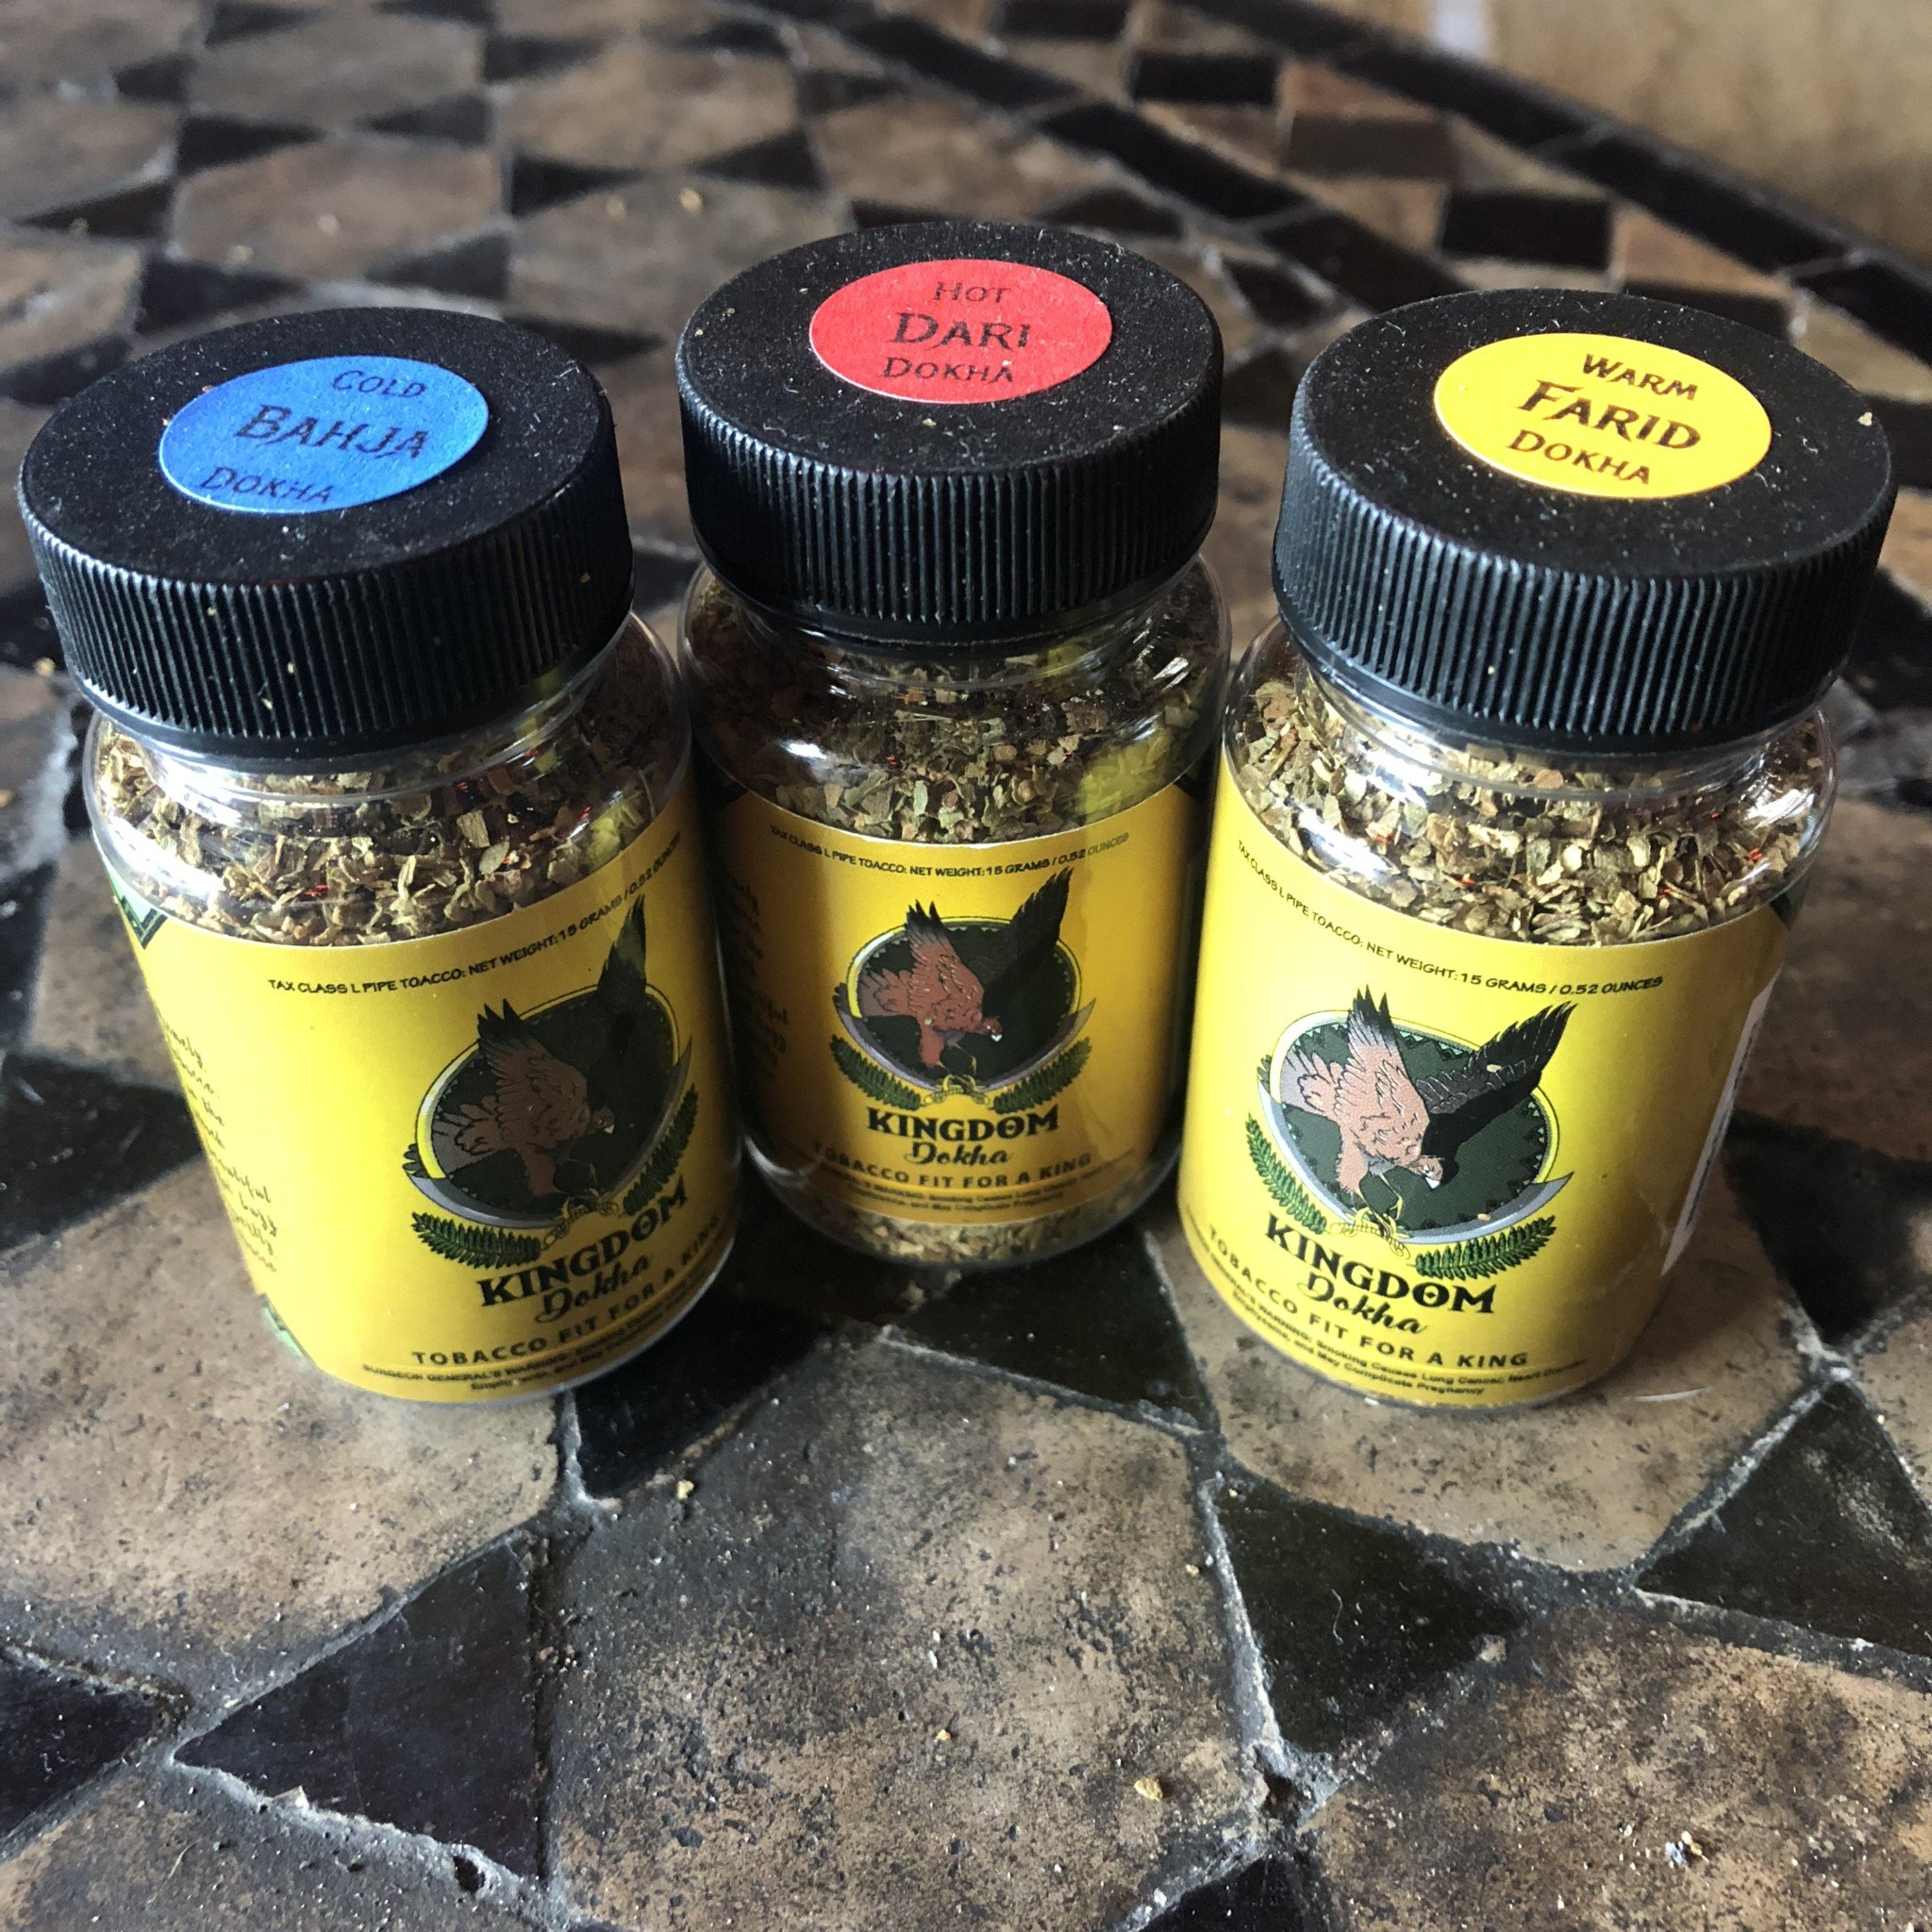 Kingdom Club Dokha Subscription